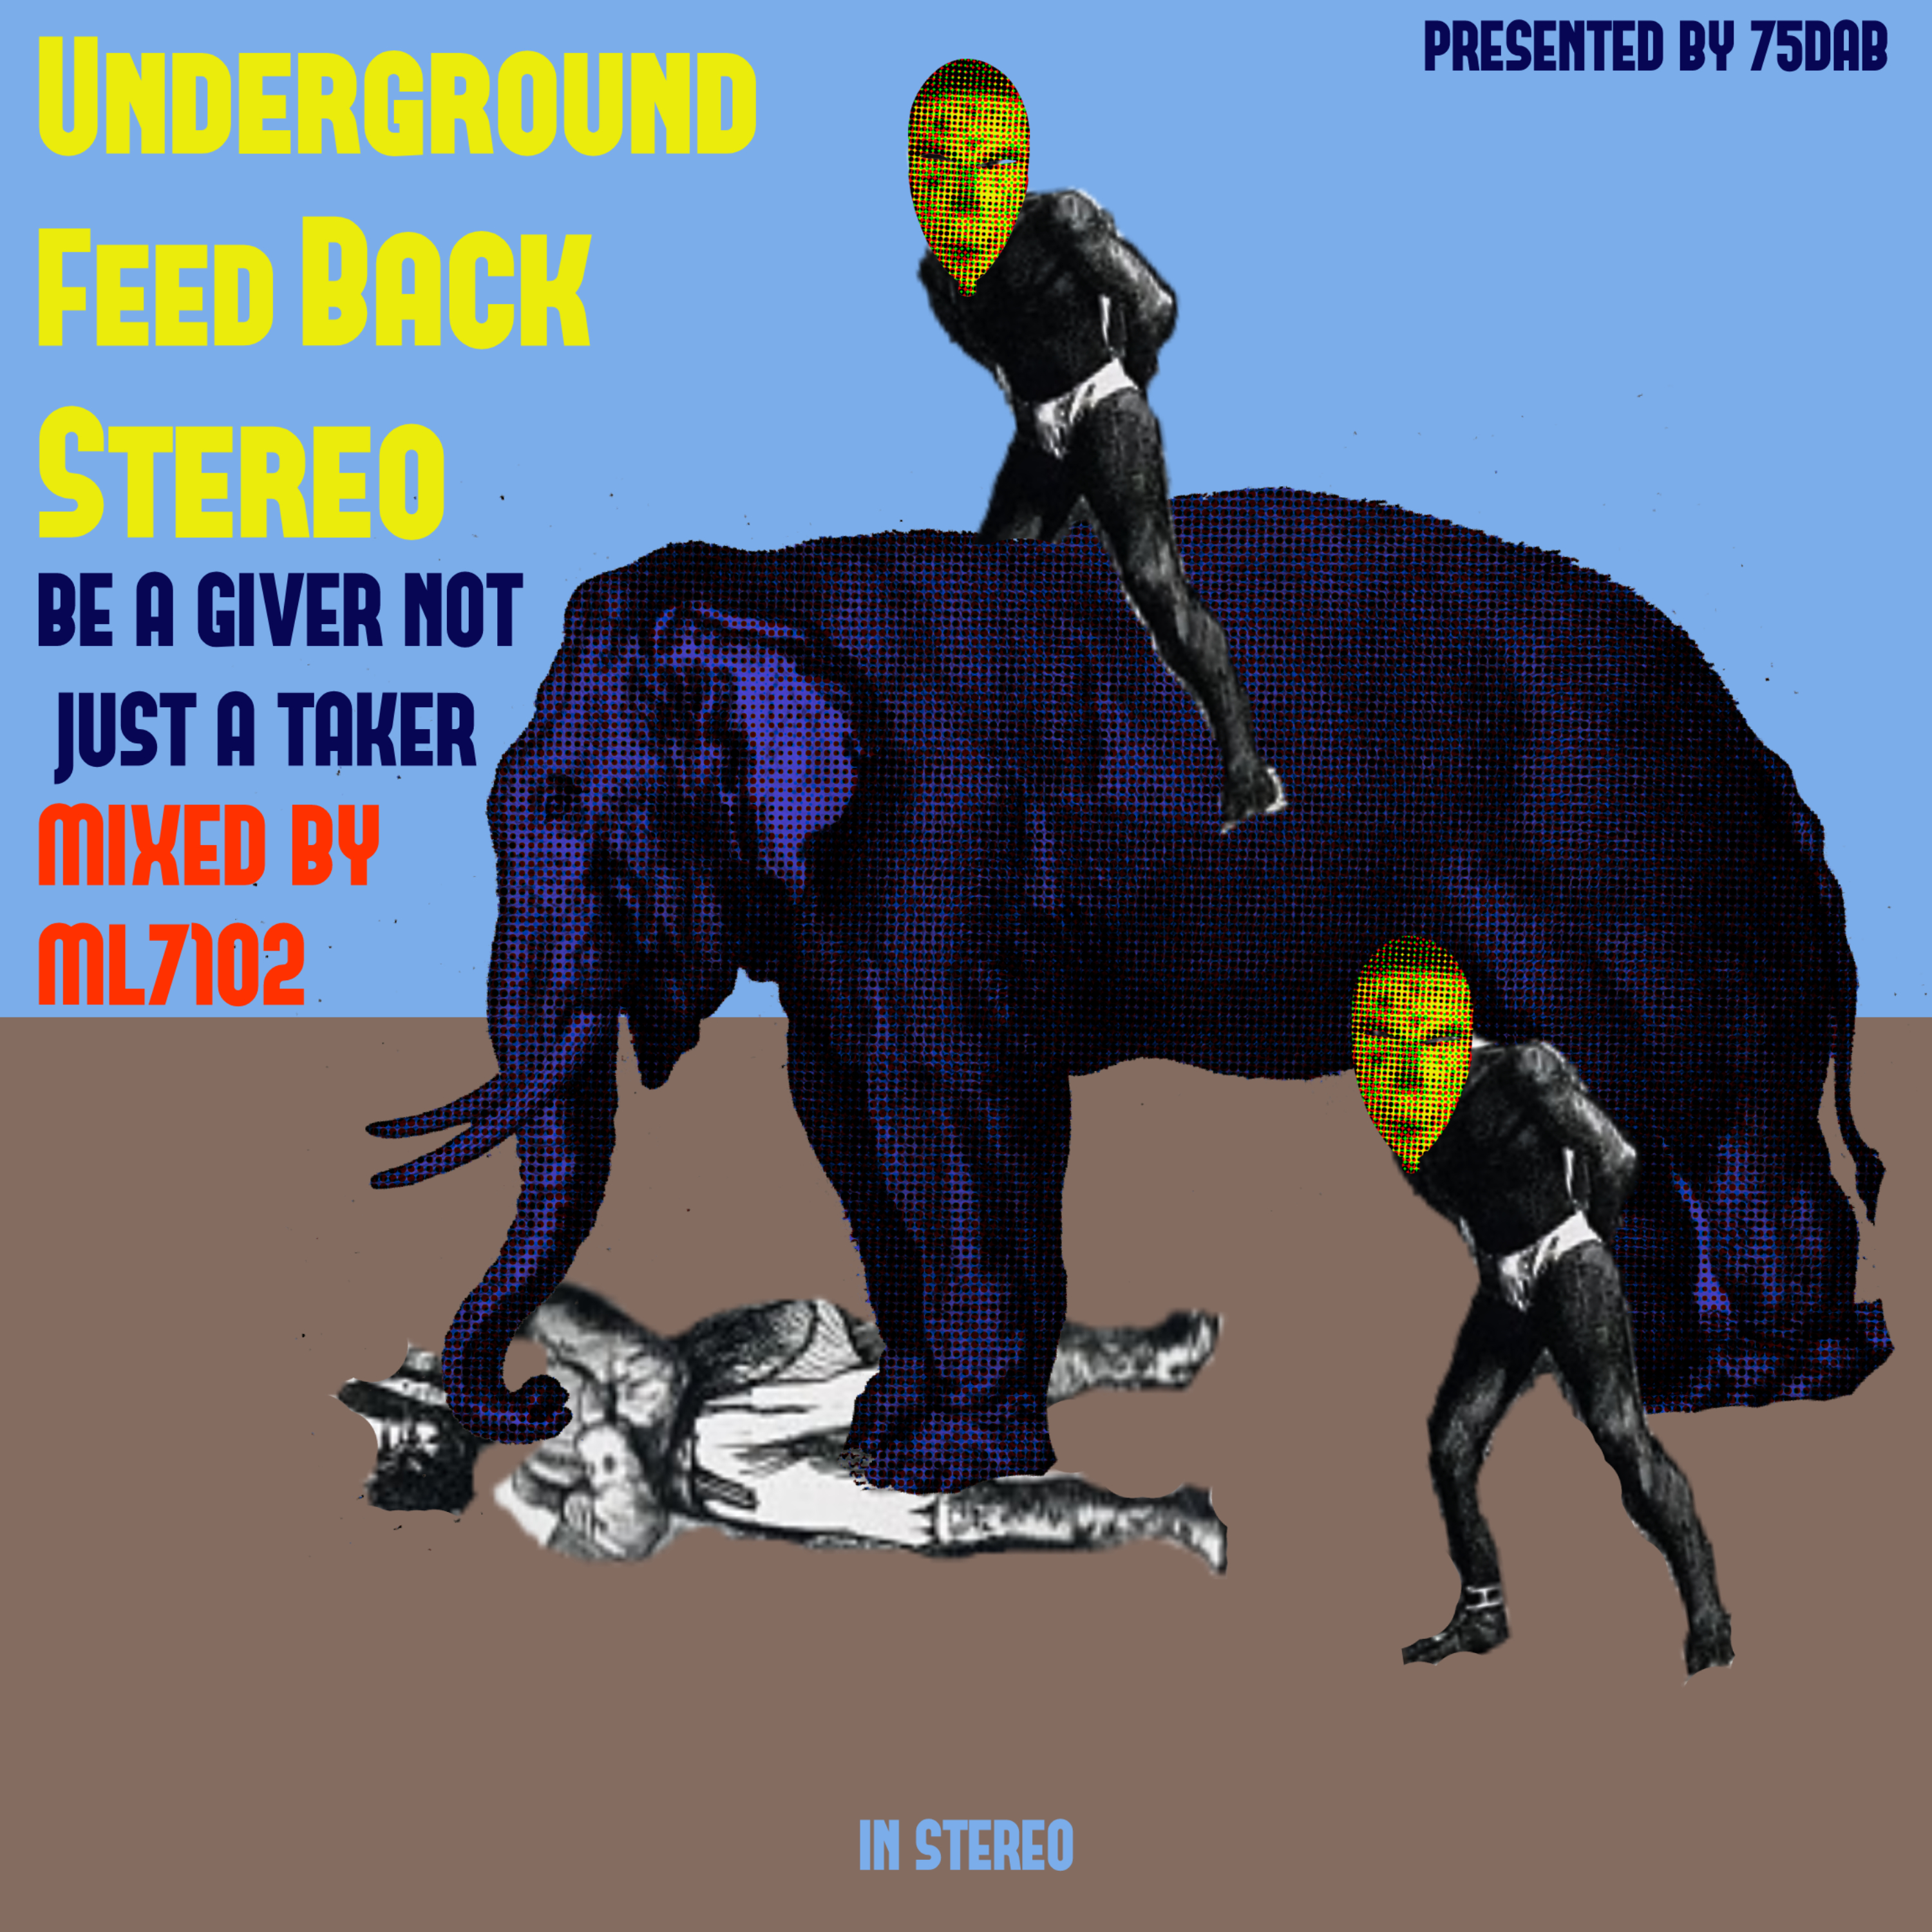 underground feed back stereo (BE A GIVER NOT JUST A TAKER 2018) cover2